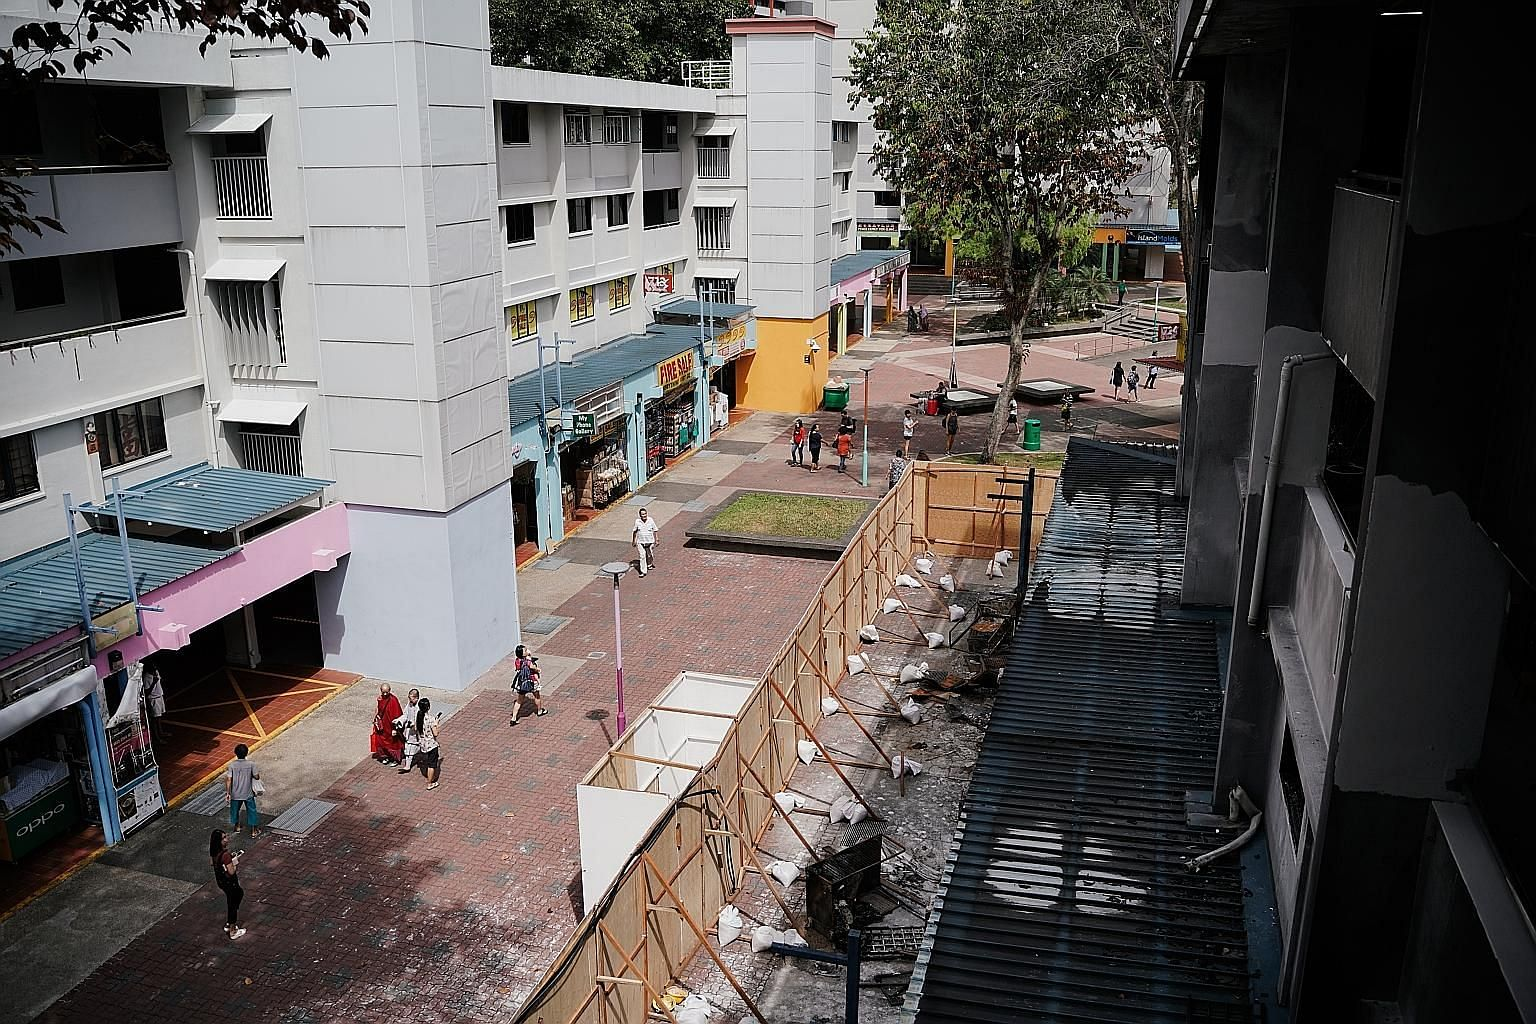 The four shops destroyed by the fire at Block 720 Ang Mo Kio Avenue 6 remain closed and the owners of those next door say business has been badly affected as some areas have been cordoned off.